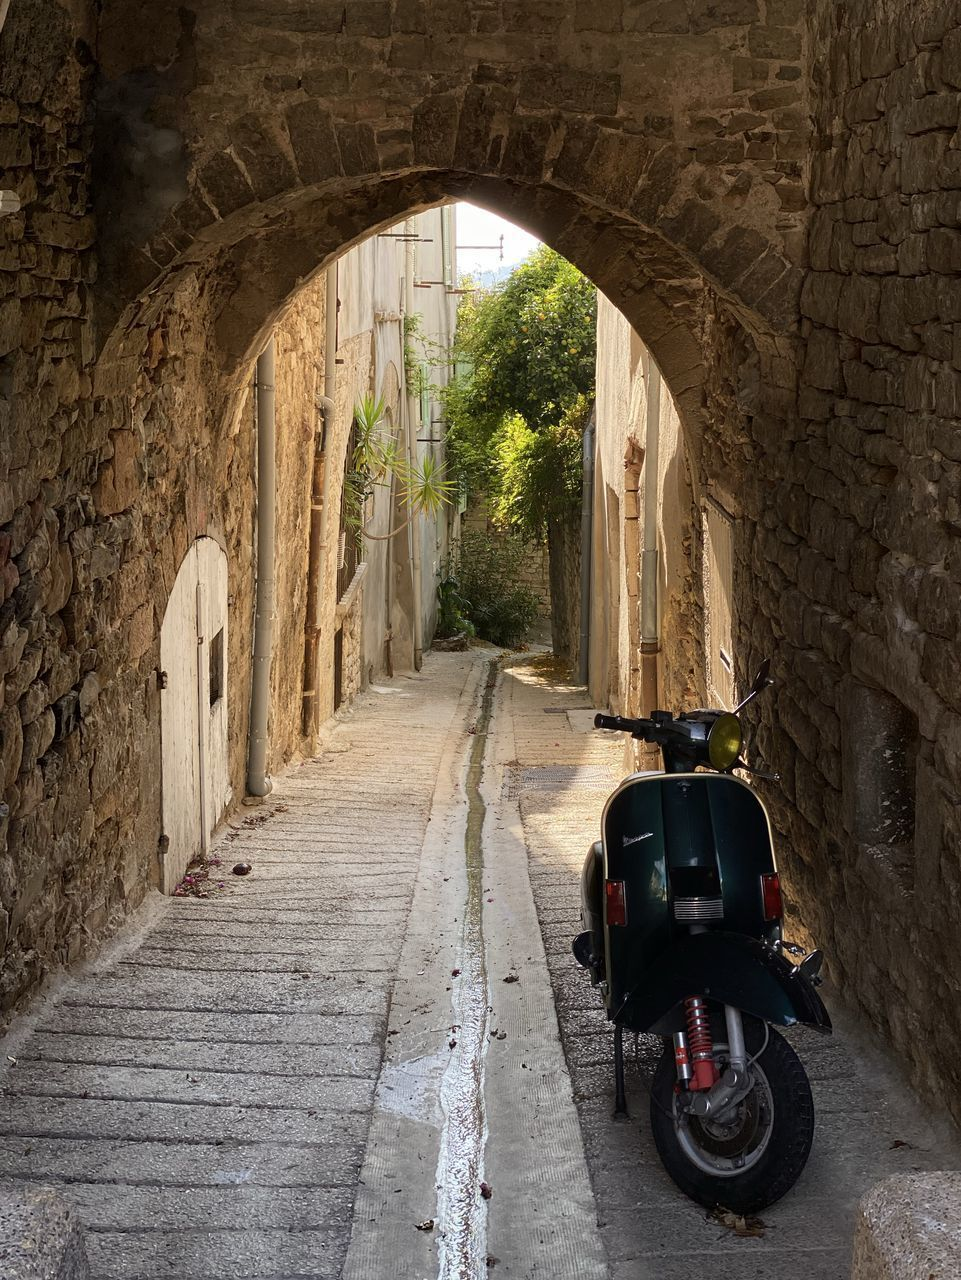 arch, built structure, architecture, transportation, the way forward, direction, mode of transportation, day, travel, land vehicle, road, building exterior, outdoors, history, nature, tunnel, old, building, the past, wall, no people, alley, architectural column, stone wall